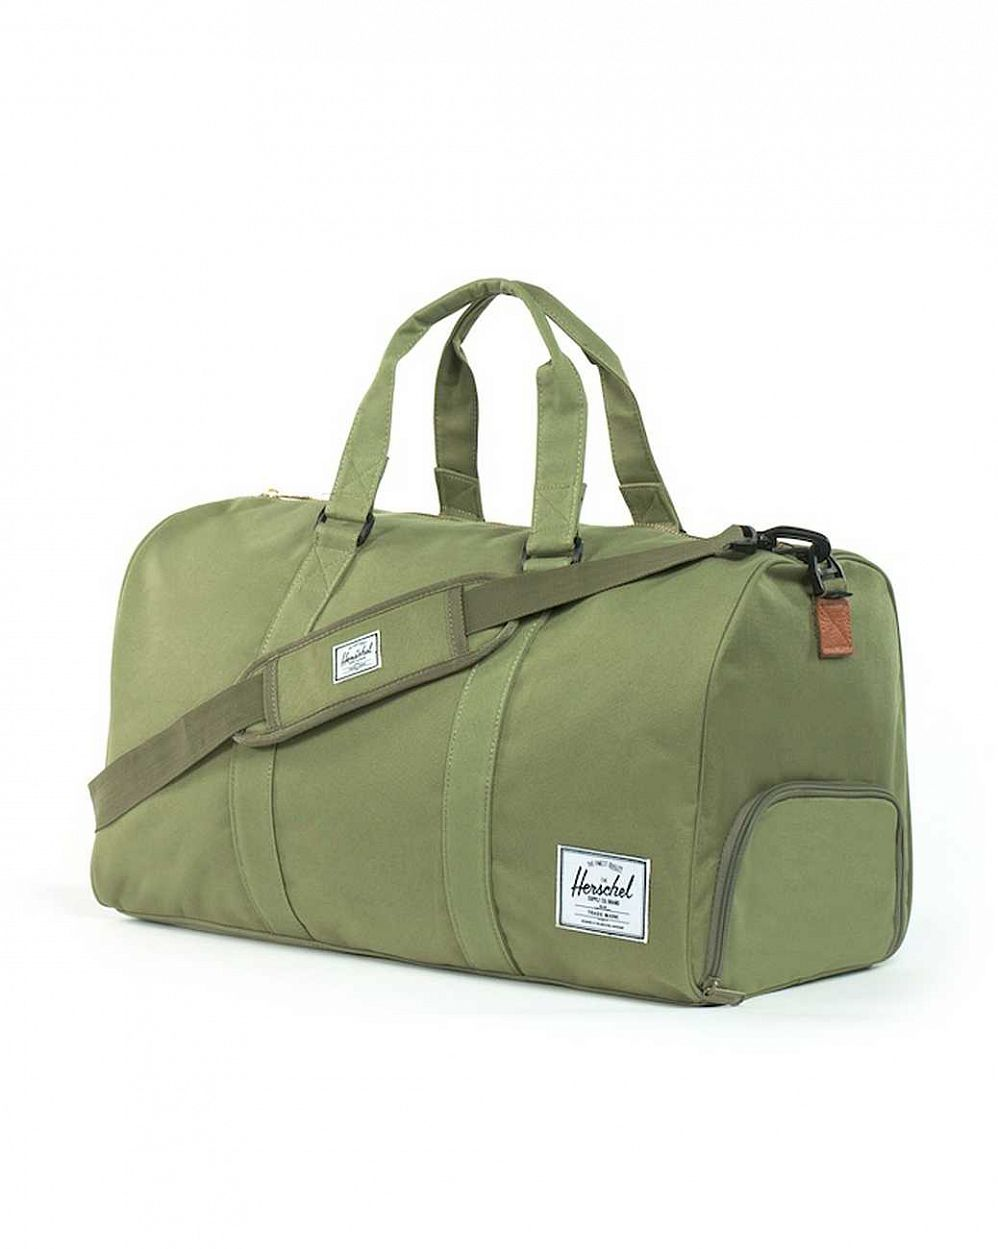 Сумка спортивная Herschel Novel Olive Drab купить в интернете